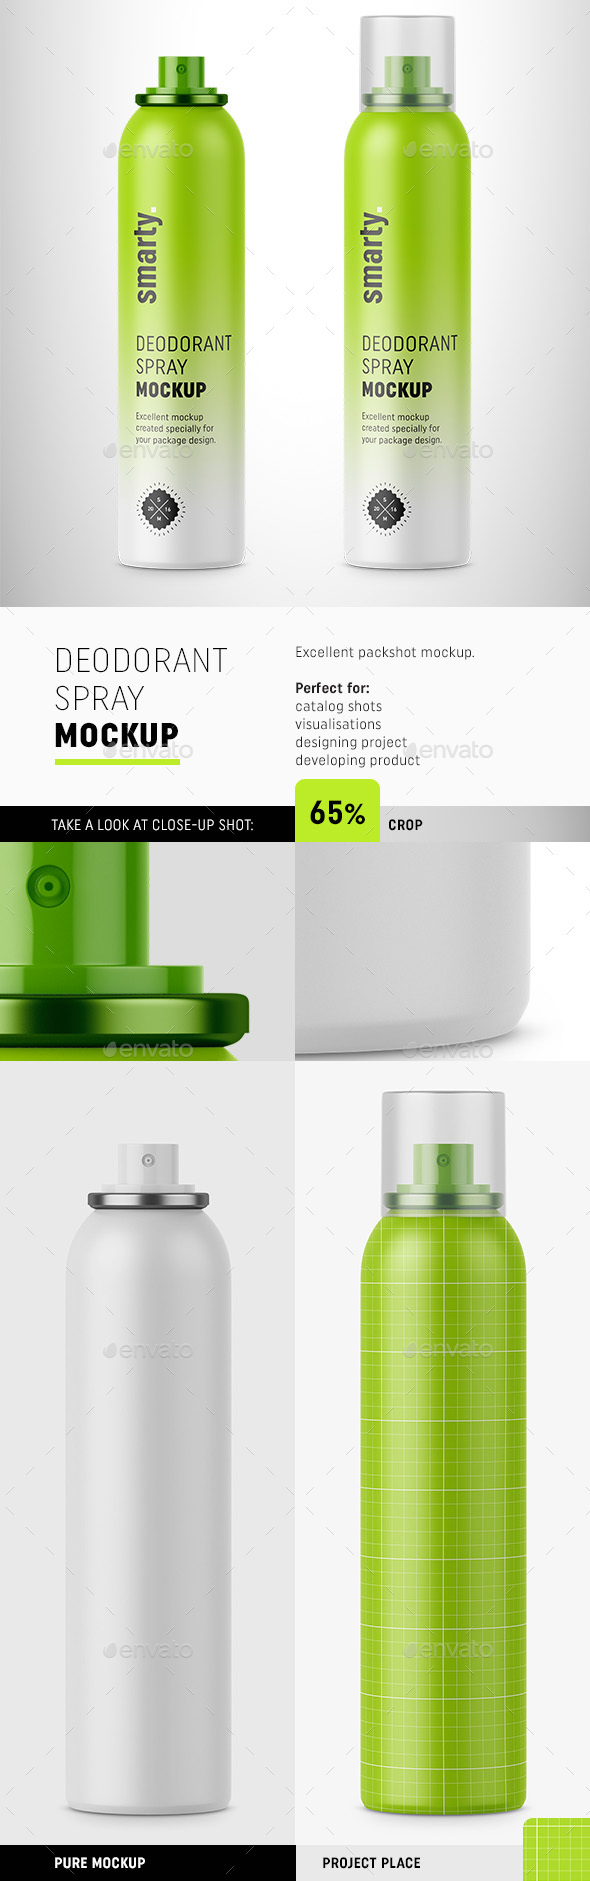 Deodorant Mockup / Aerosol - Beauty Packaging